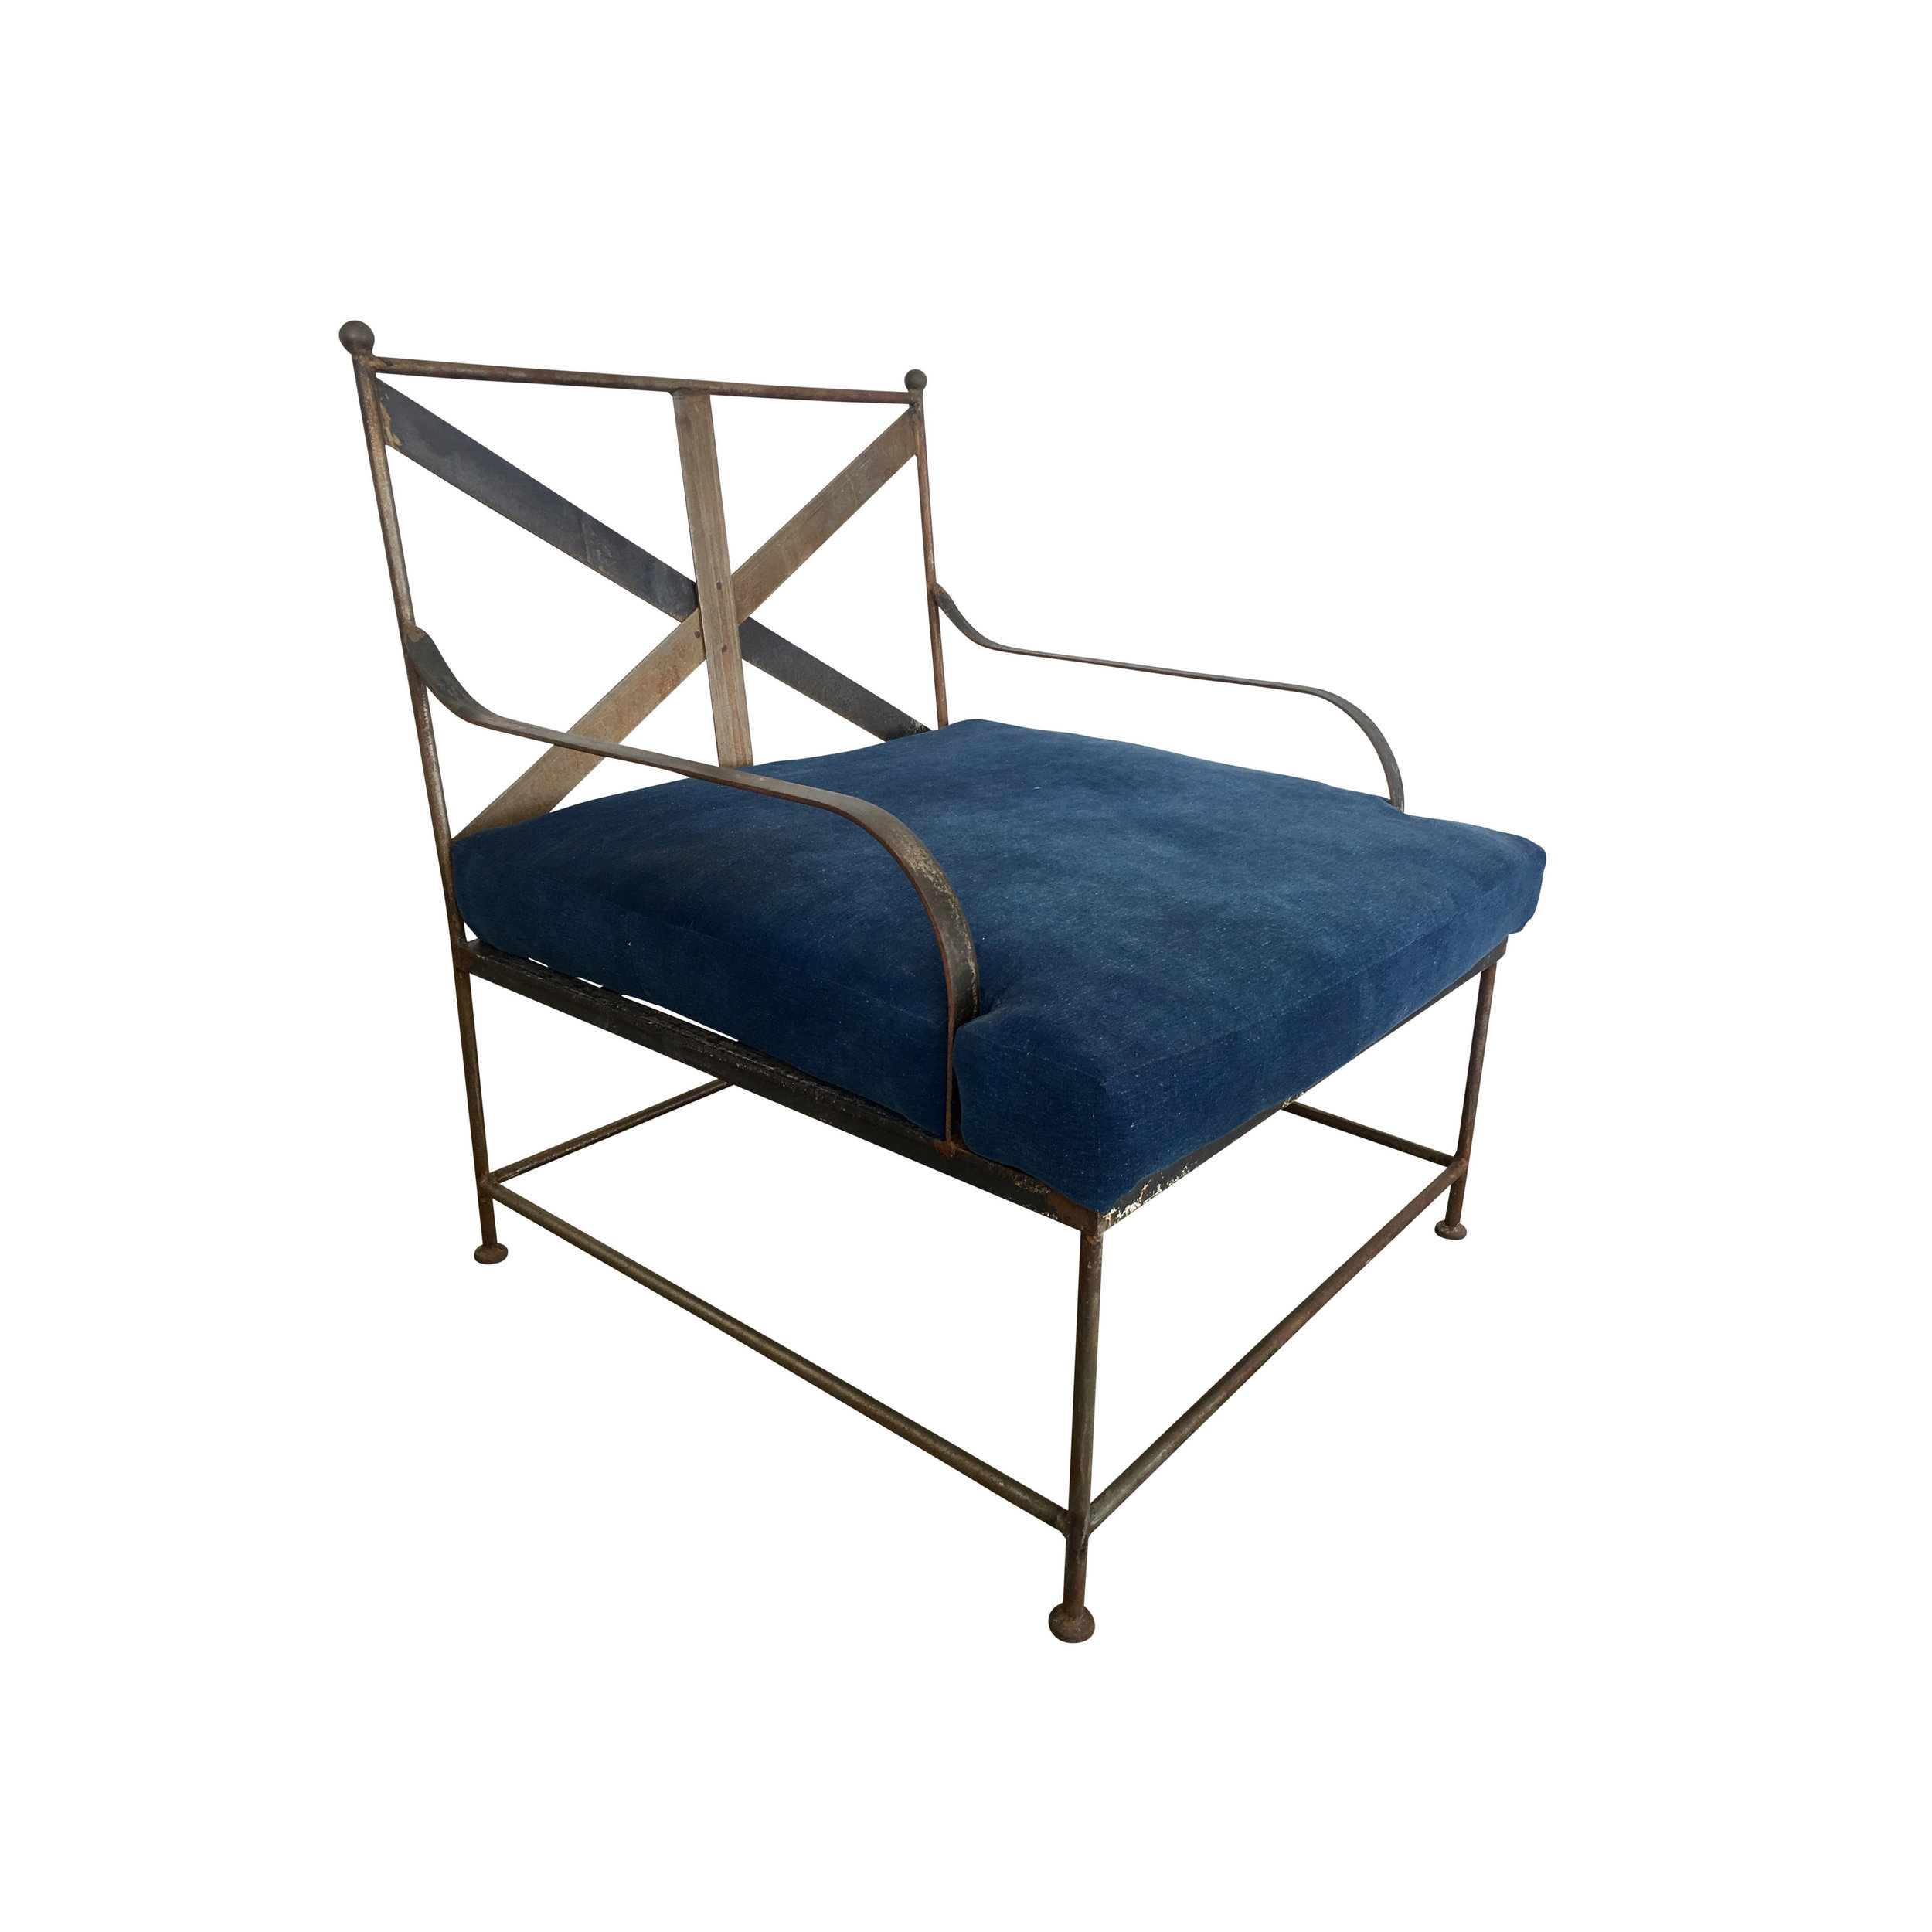 deKor Metal Chair + Cushions